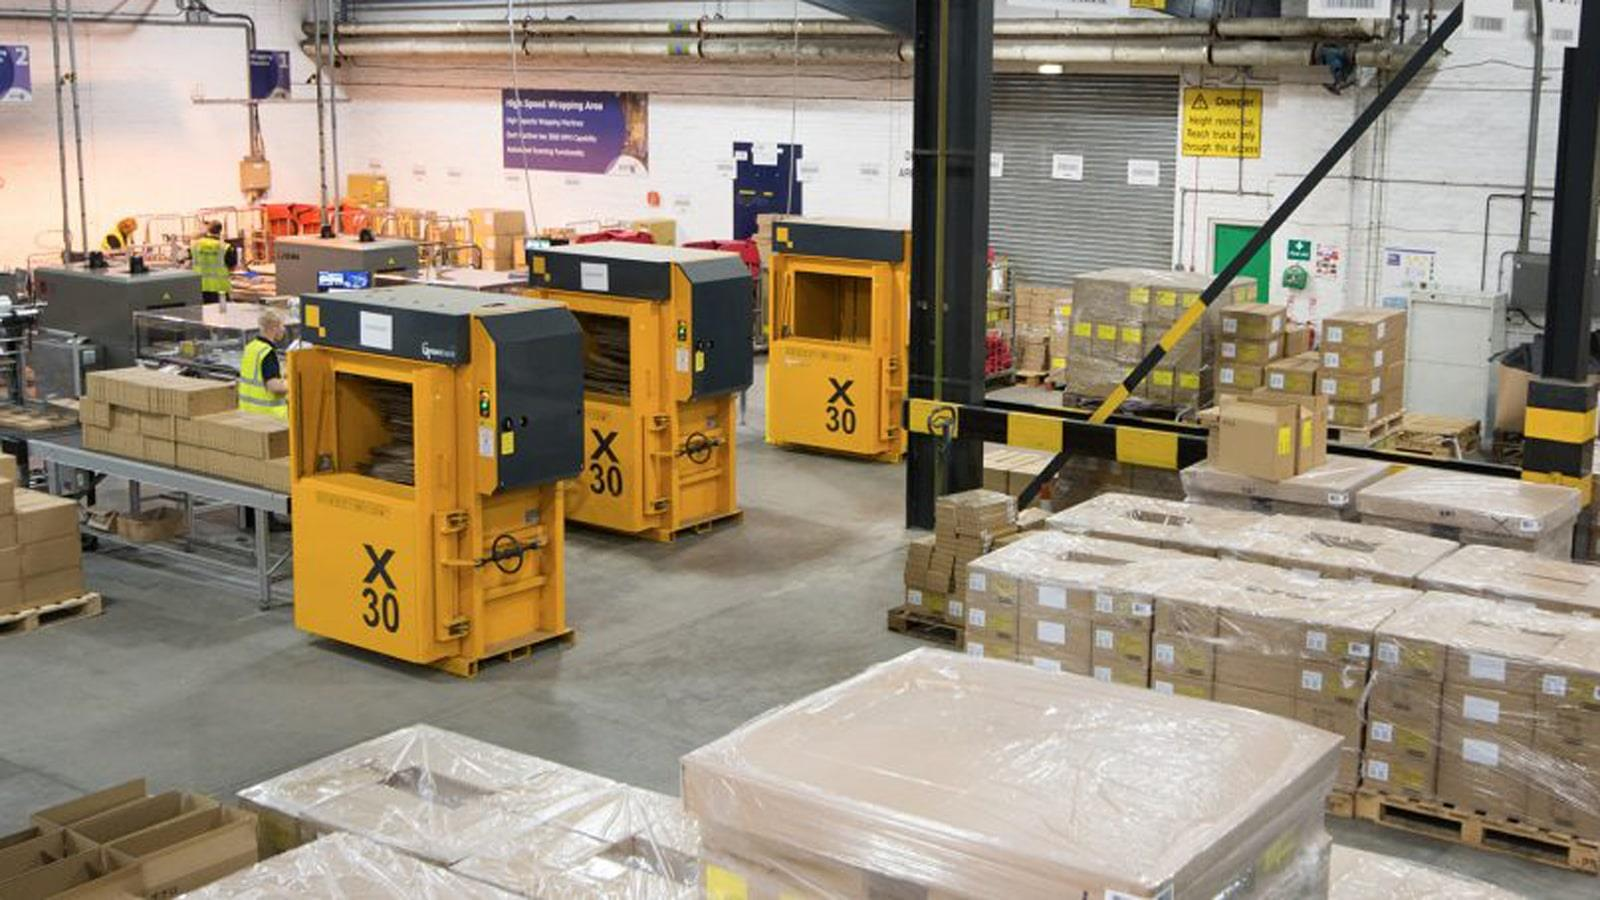 Production hall with 3 yellow Bramidan balers X30